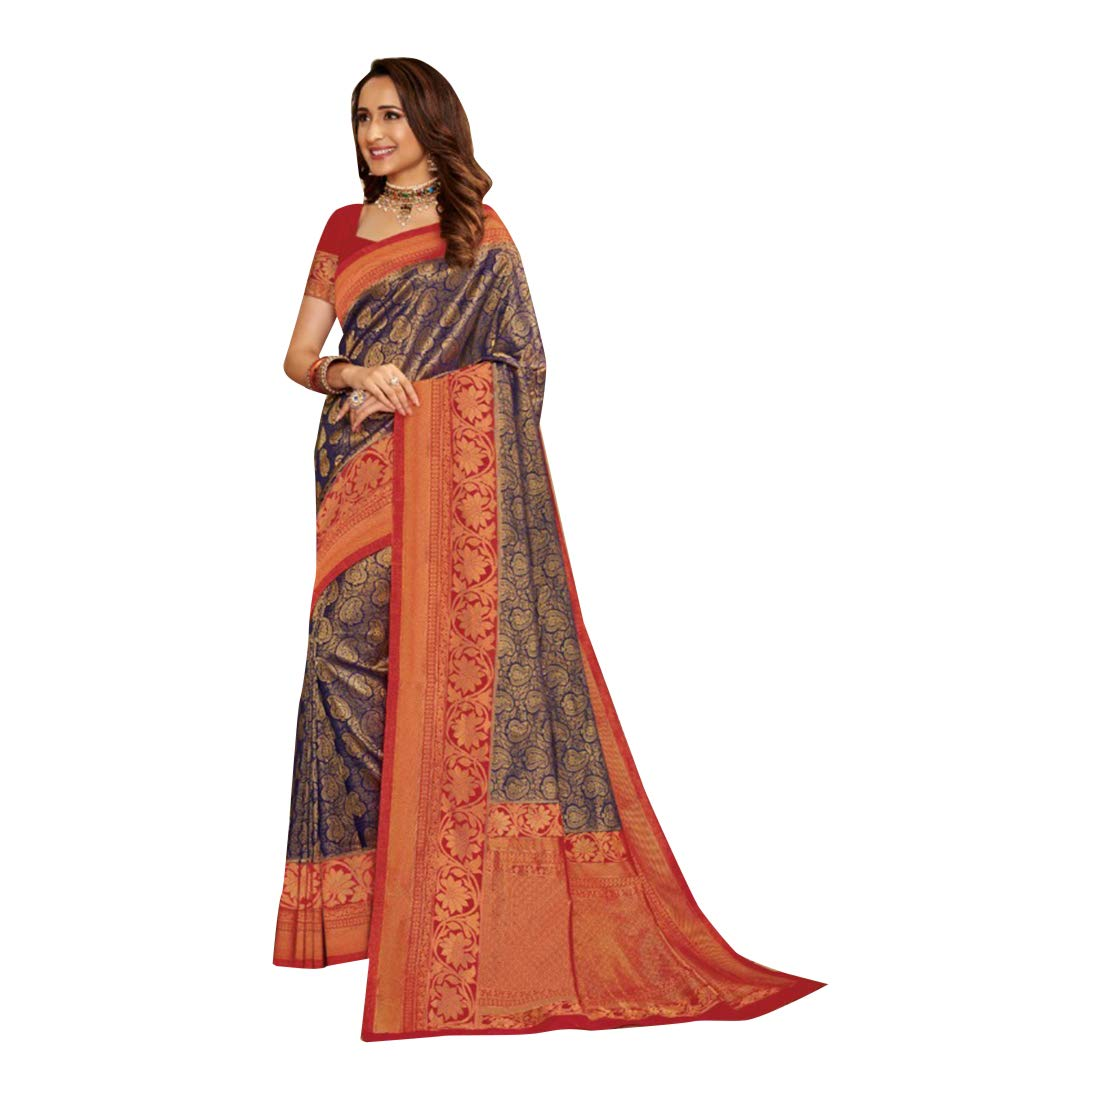 Navybluee Indian Traditional Festive Party wear Silk Sari for Women Saree with Blouse piece Designer collection 7918